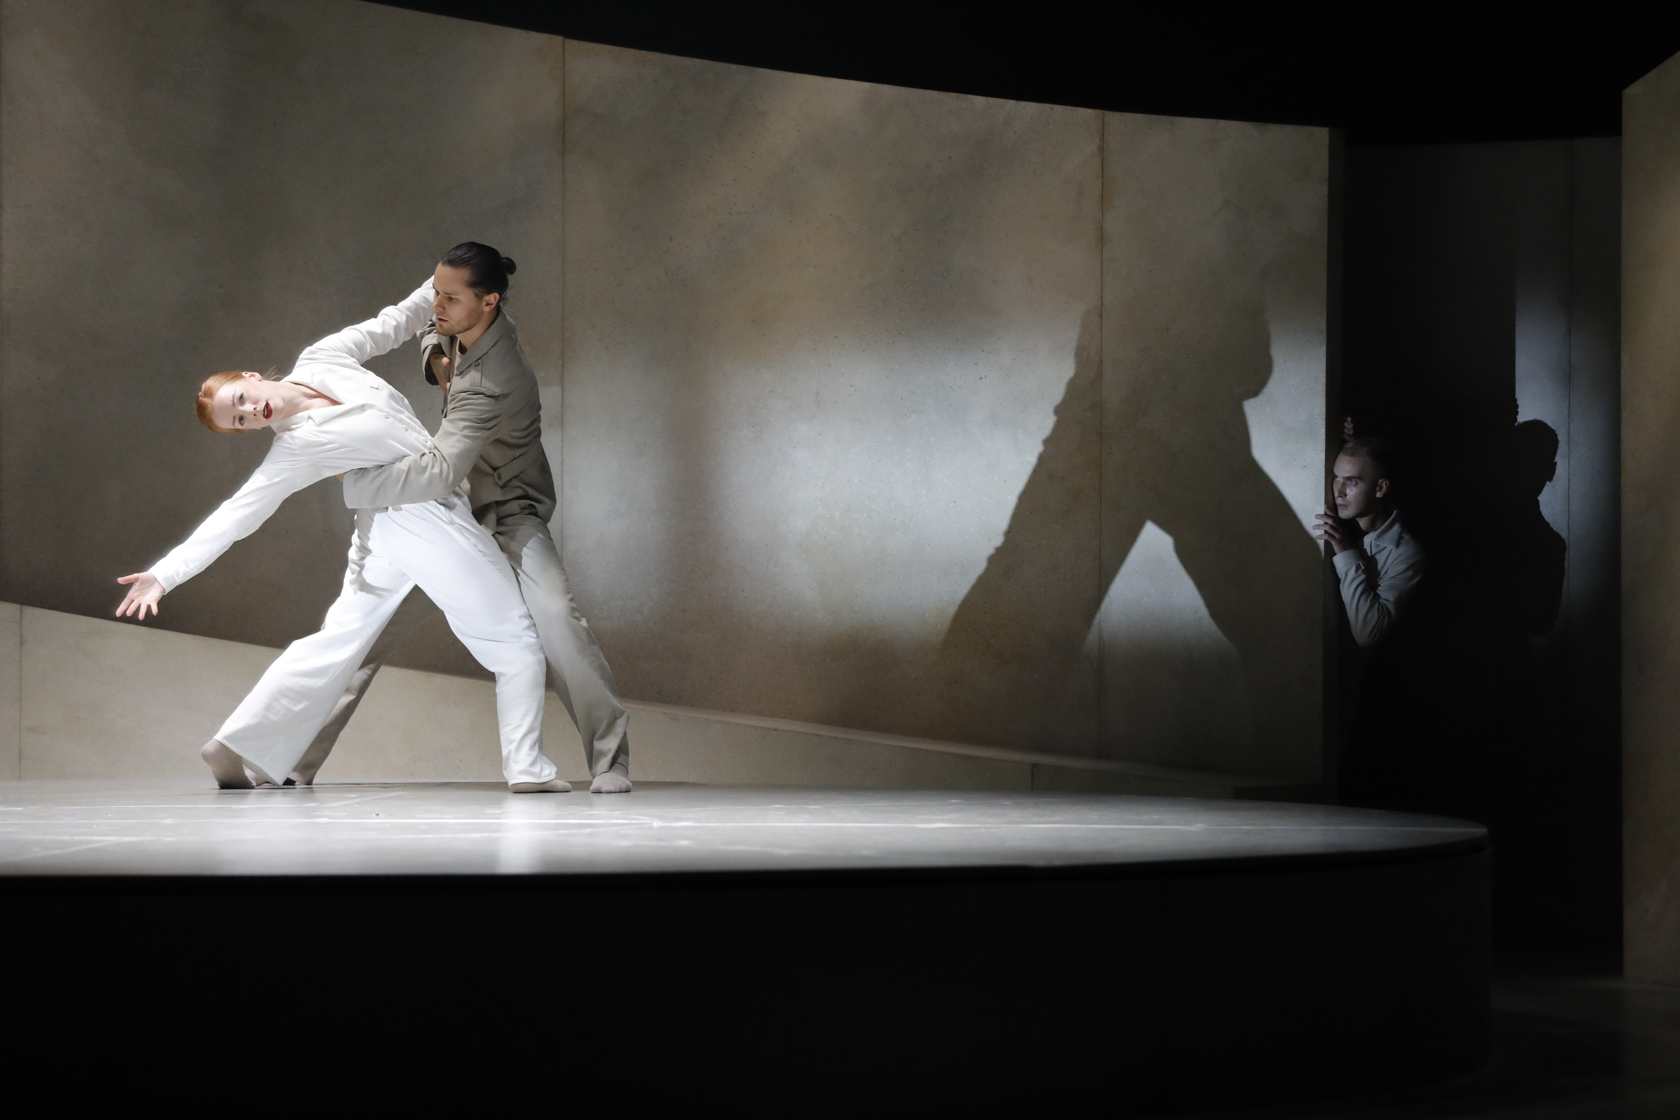 Two dancers on stage. The male dancer has his arm around her back as she leans backwards and had her arm stretched back. At the background someone is watching from the shadow.